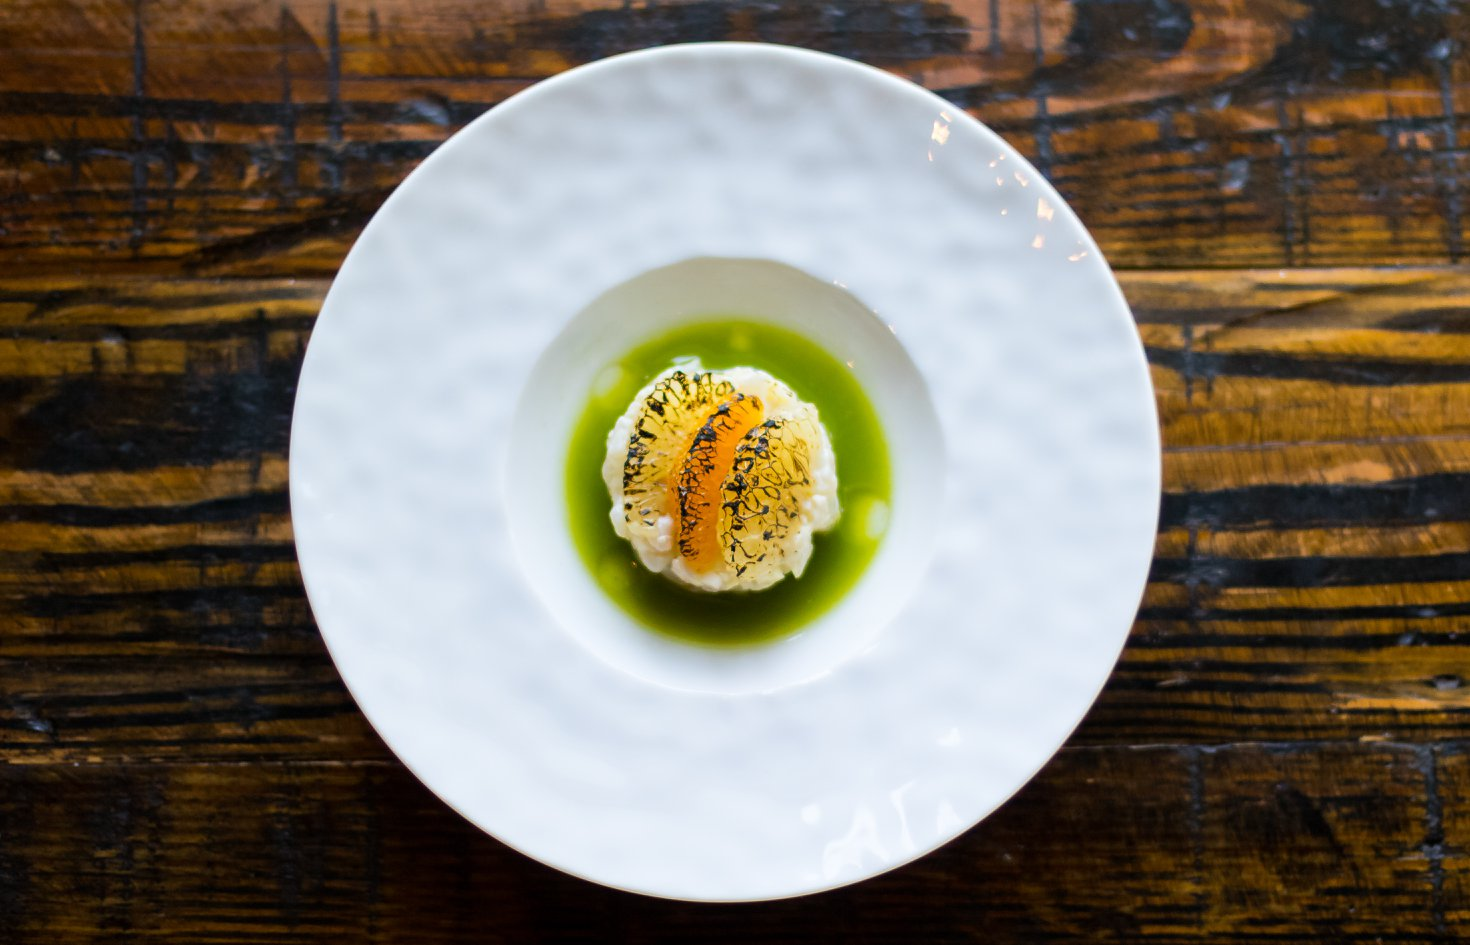 Gulf snapper tartare, kholrabi, and herb nage from Lazy Betty